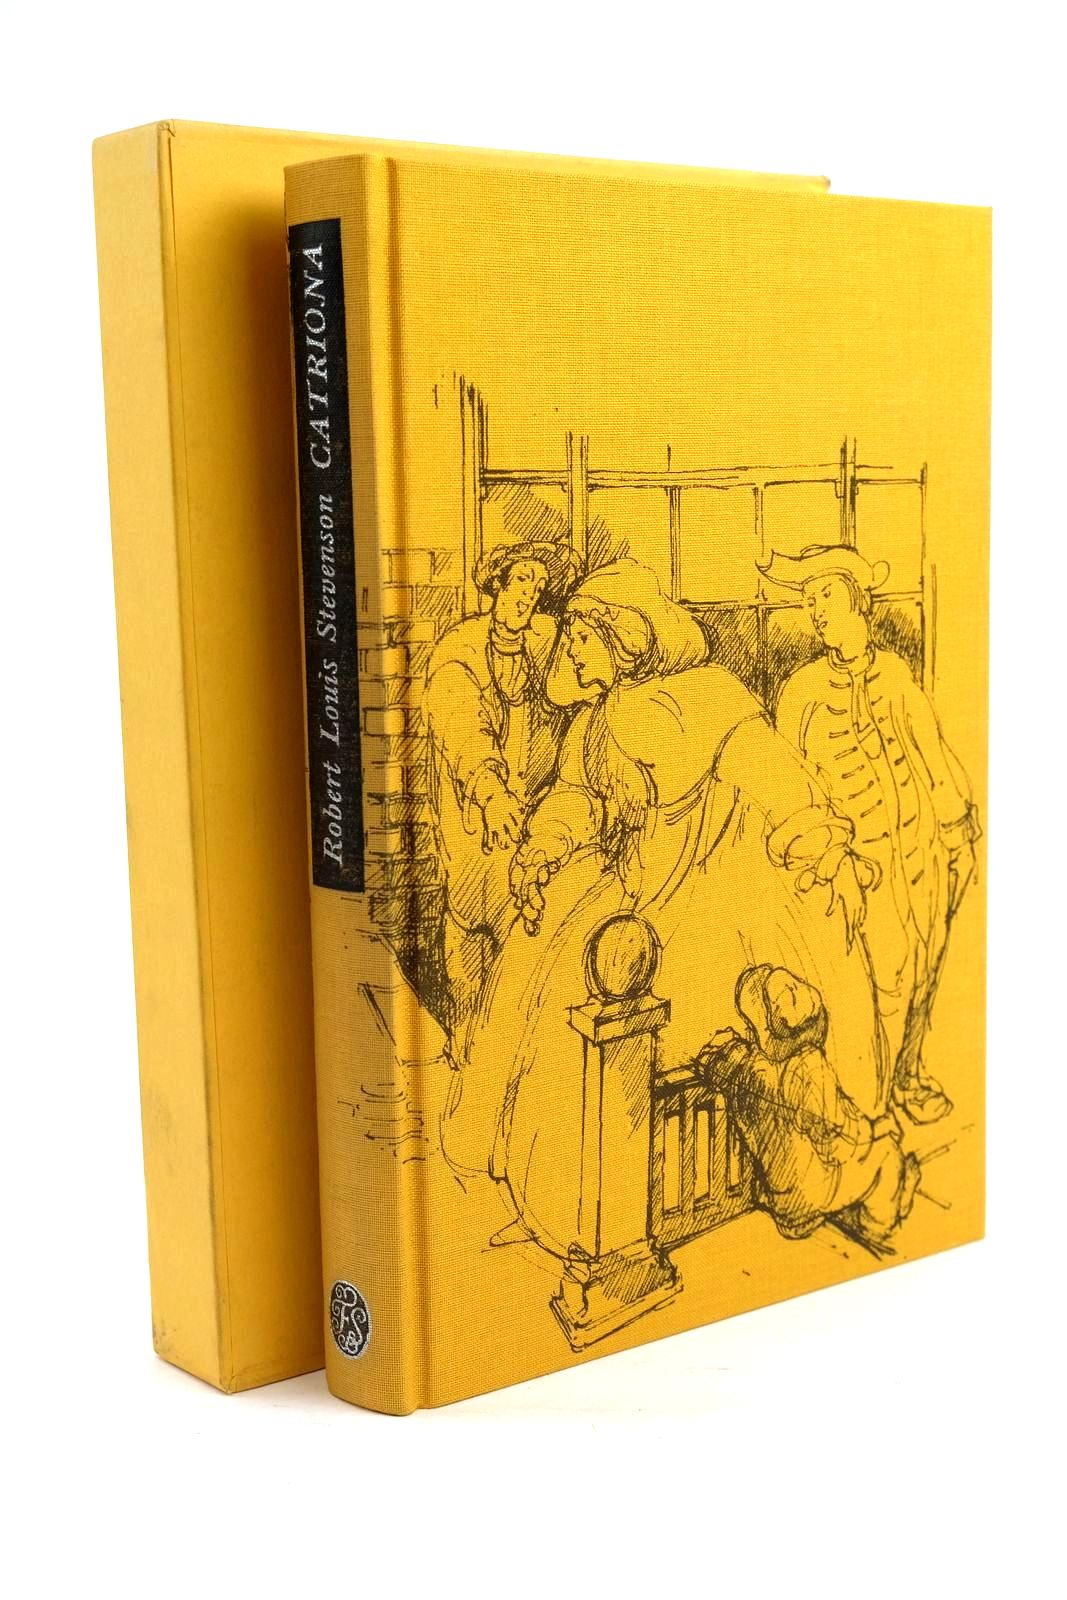 Photo of CATRIONA written by Stevenson, Robert Louis